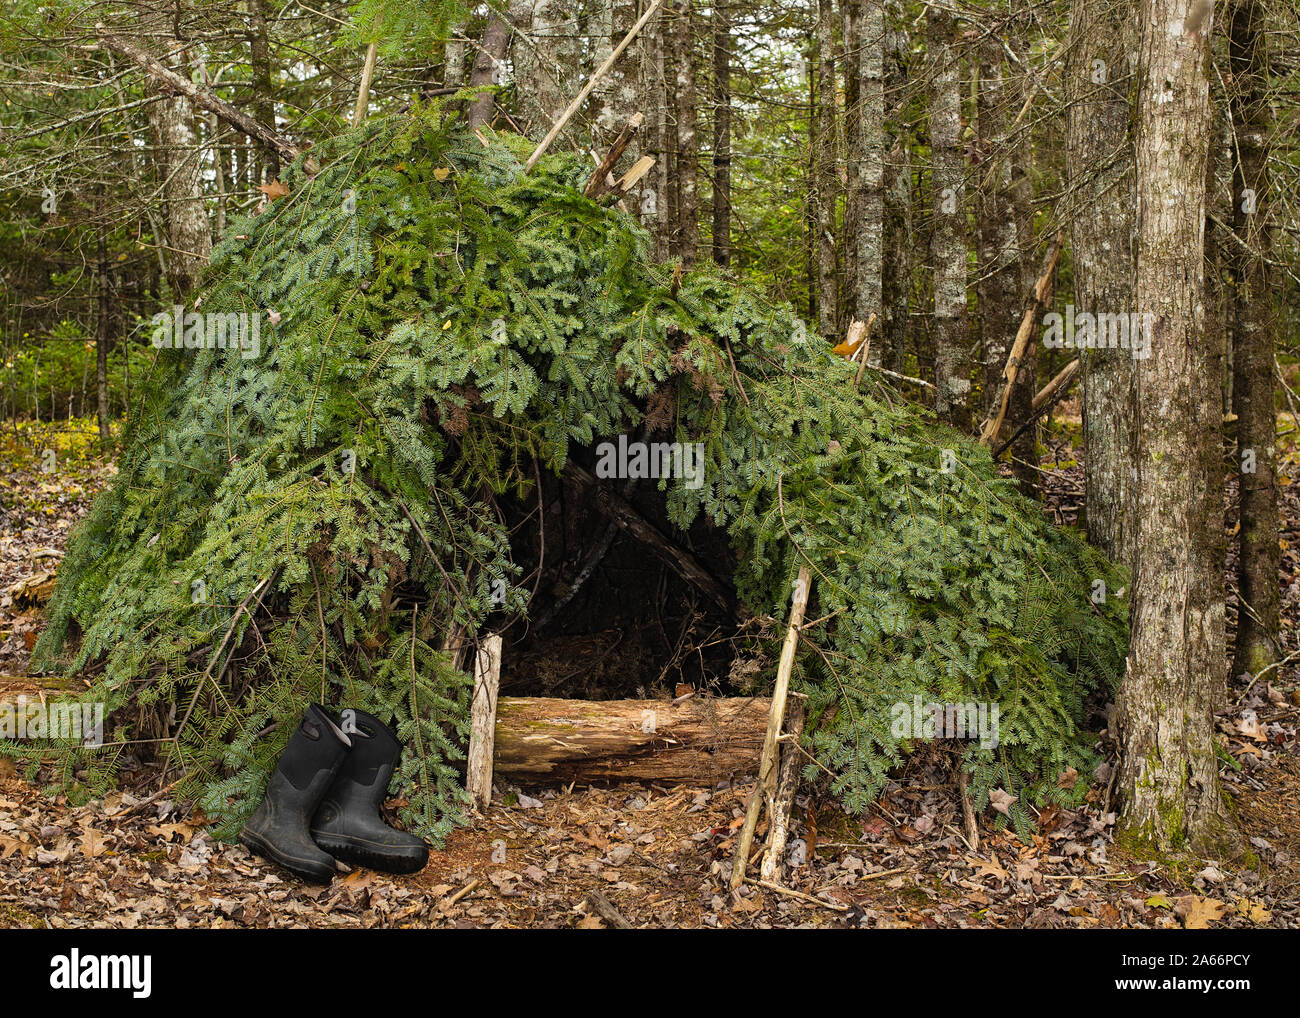 Survival Shelter High Resolution Stock Photography and Images - Alamy